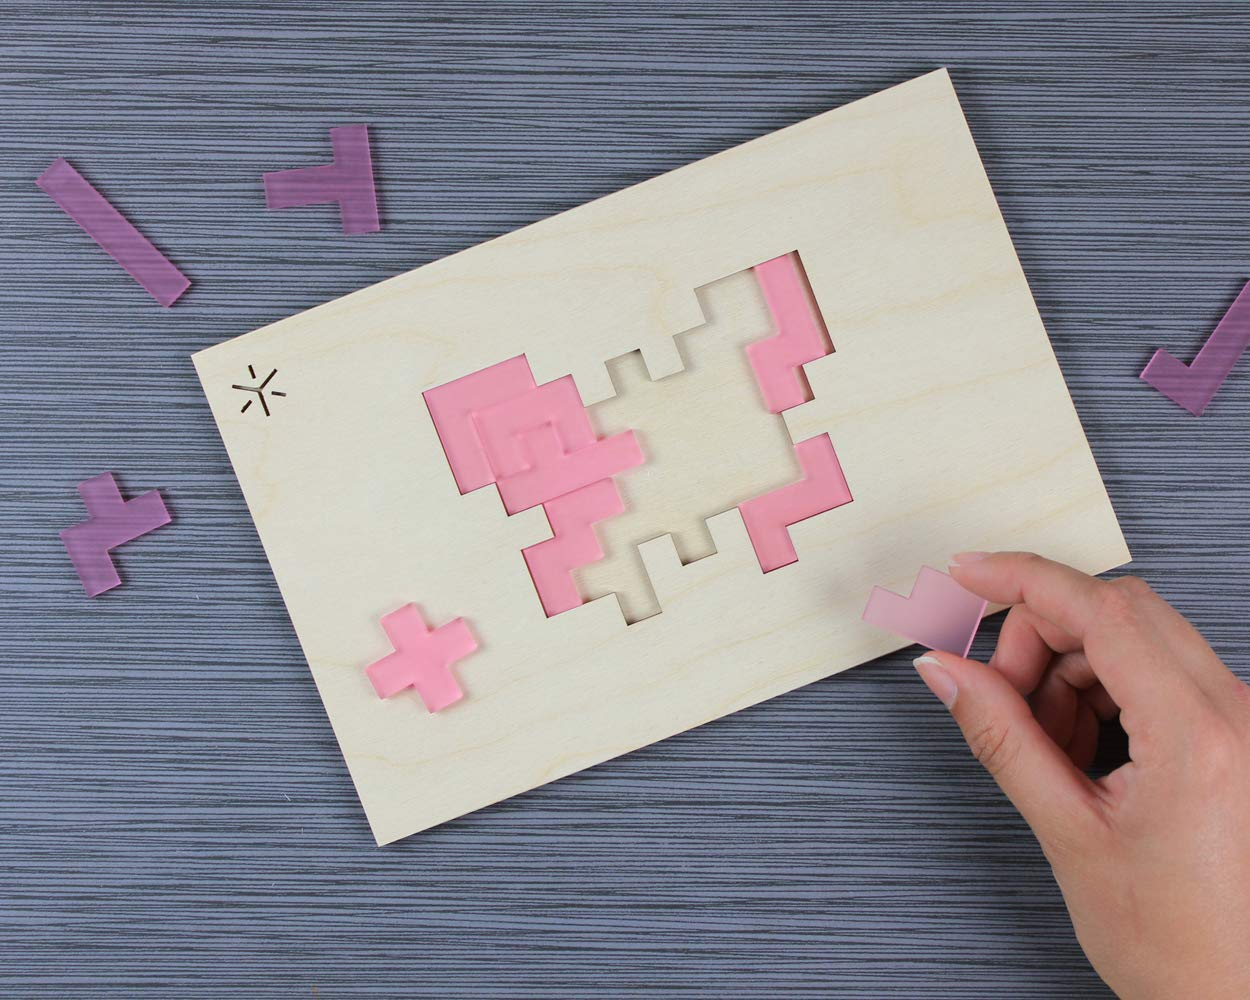 Butterfly Pentomino Puzzle